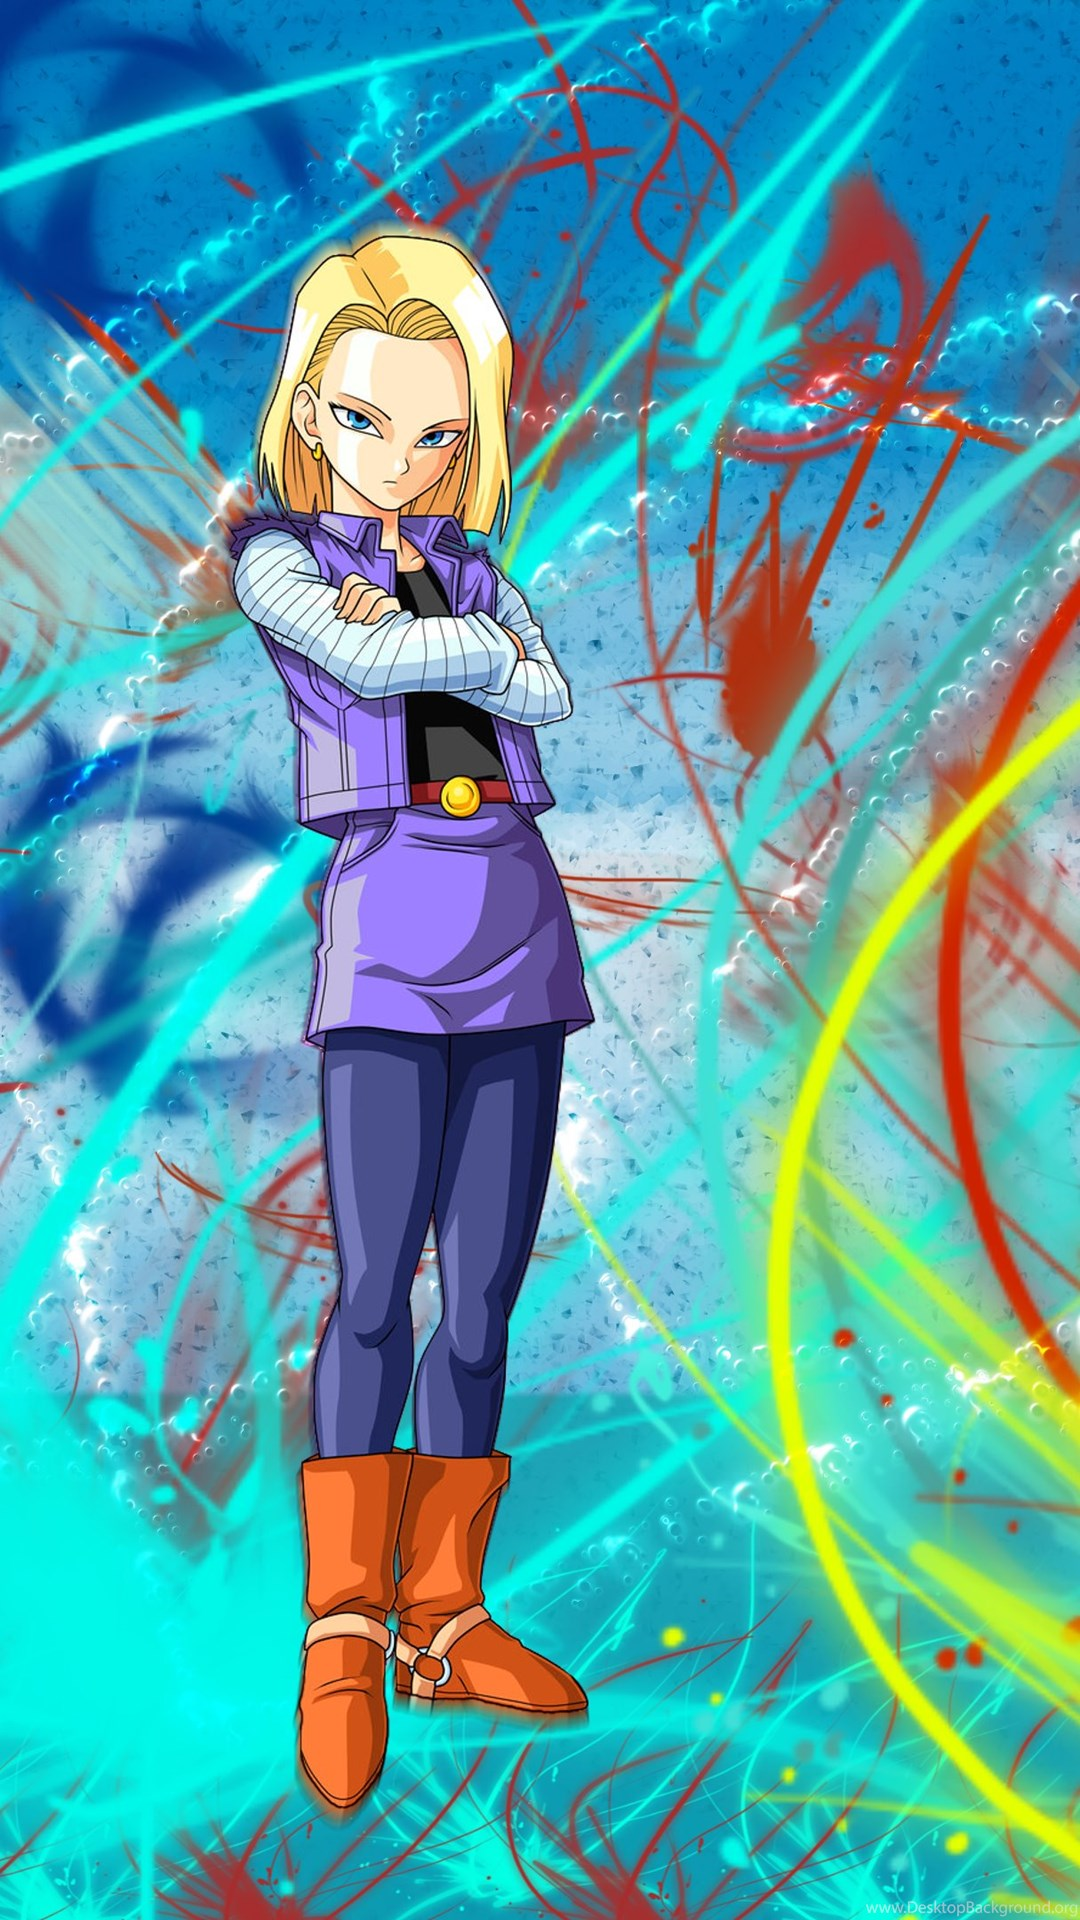 Android 18 Wallpapers By DragonsWarth18 On DeviantArt